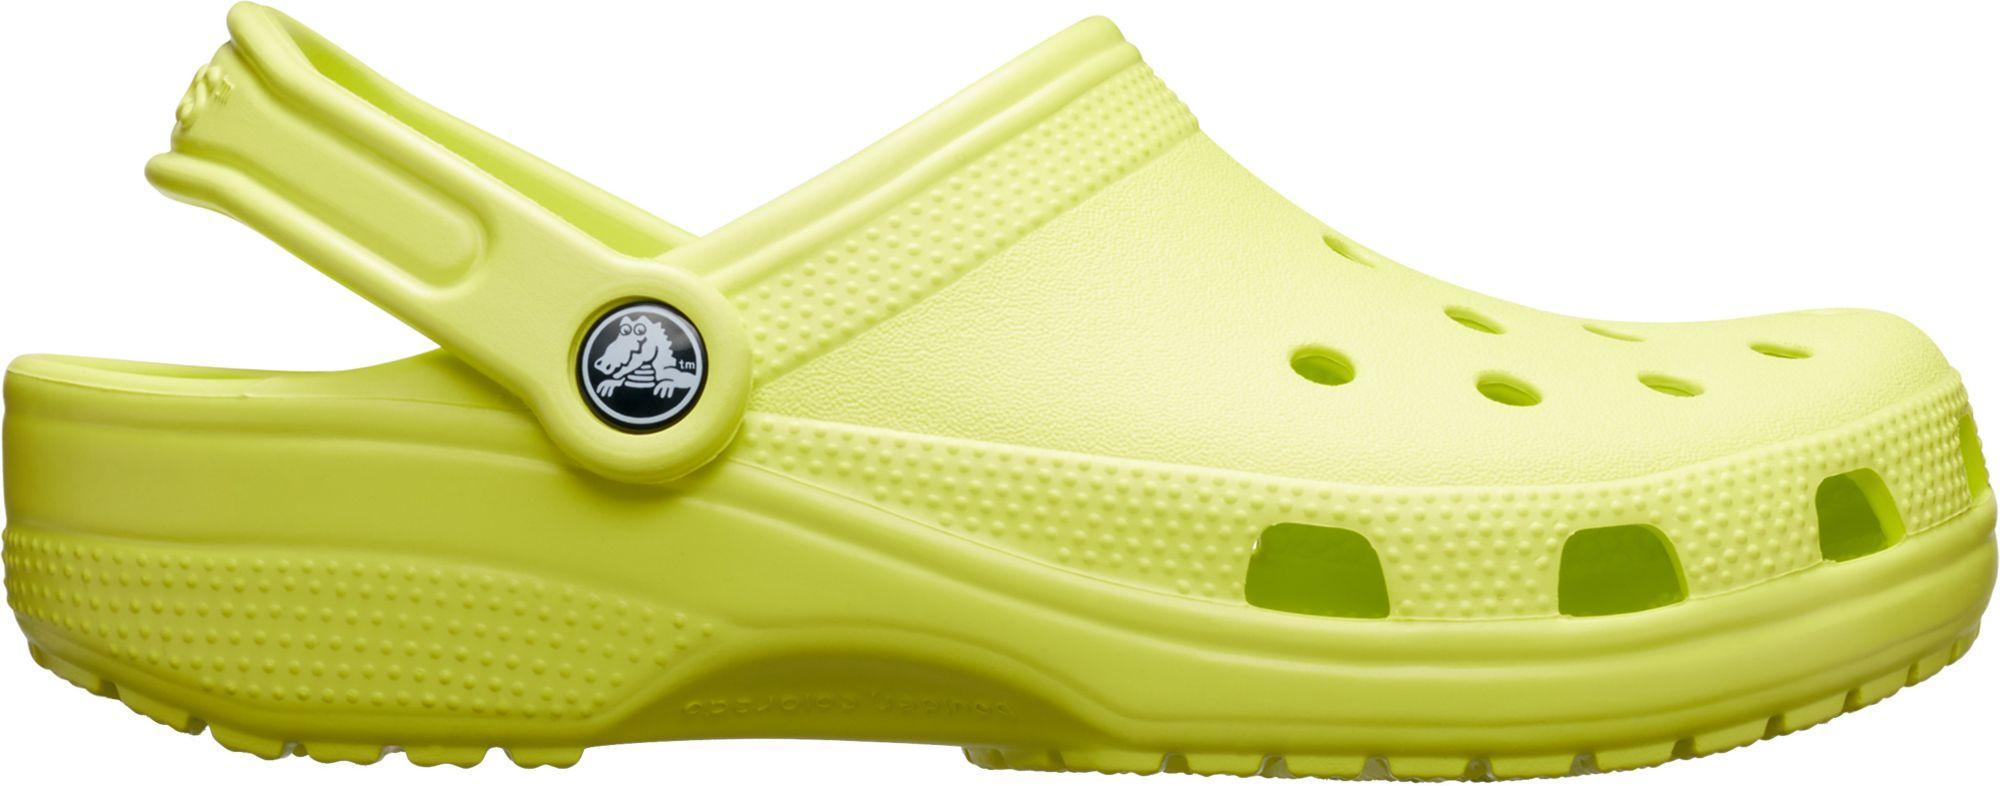 01564a7d8 Lyst - Crocs™ Adult Original Classic Clogs in Yellow